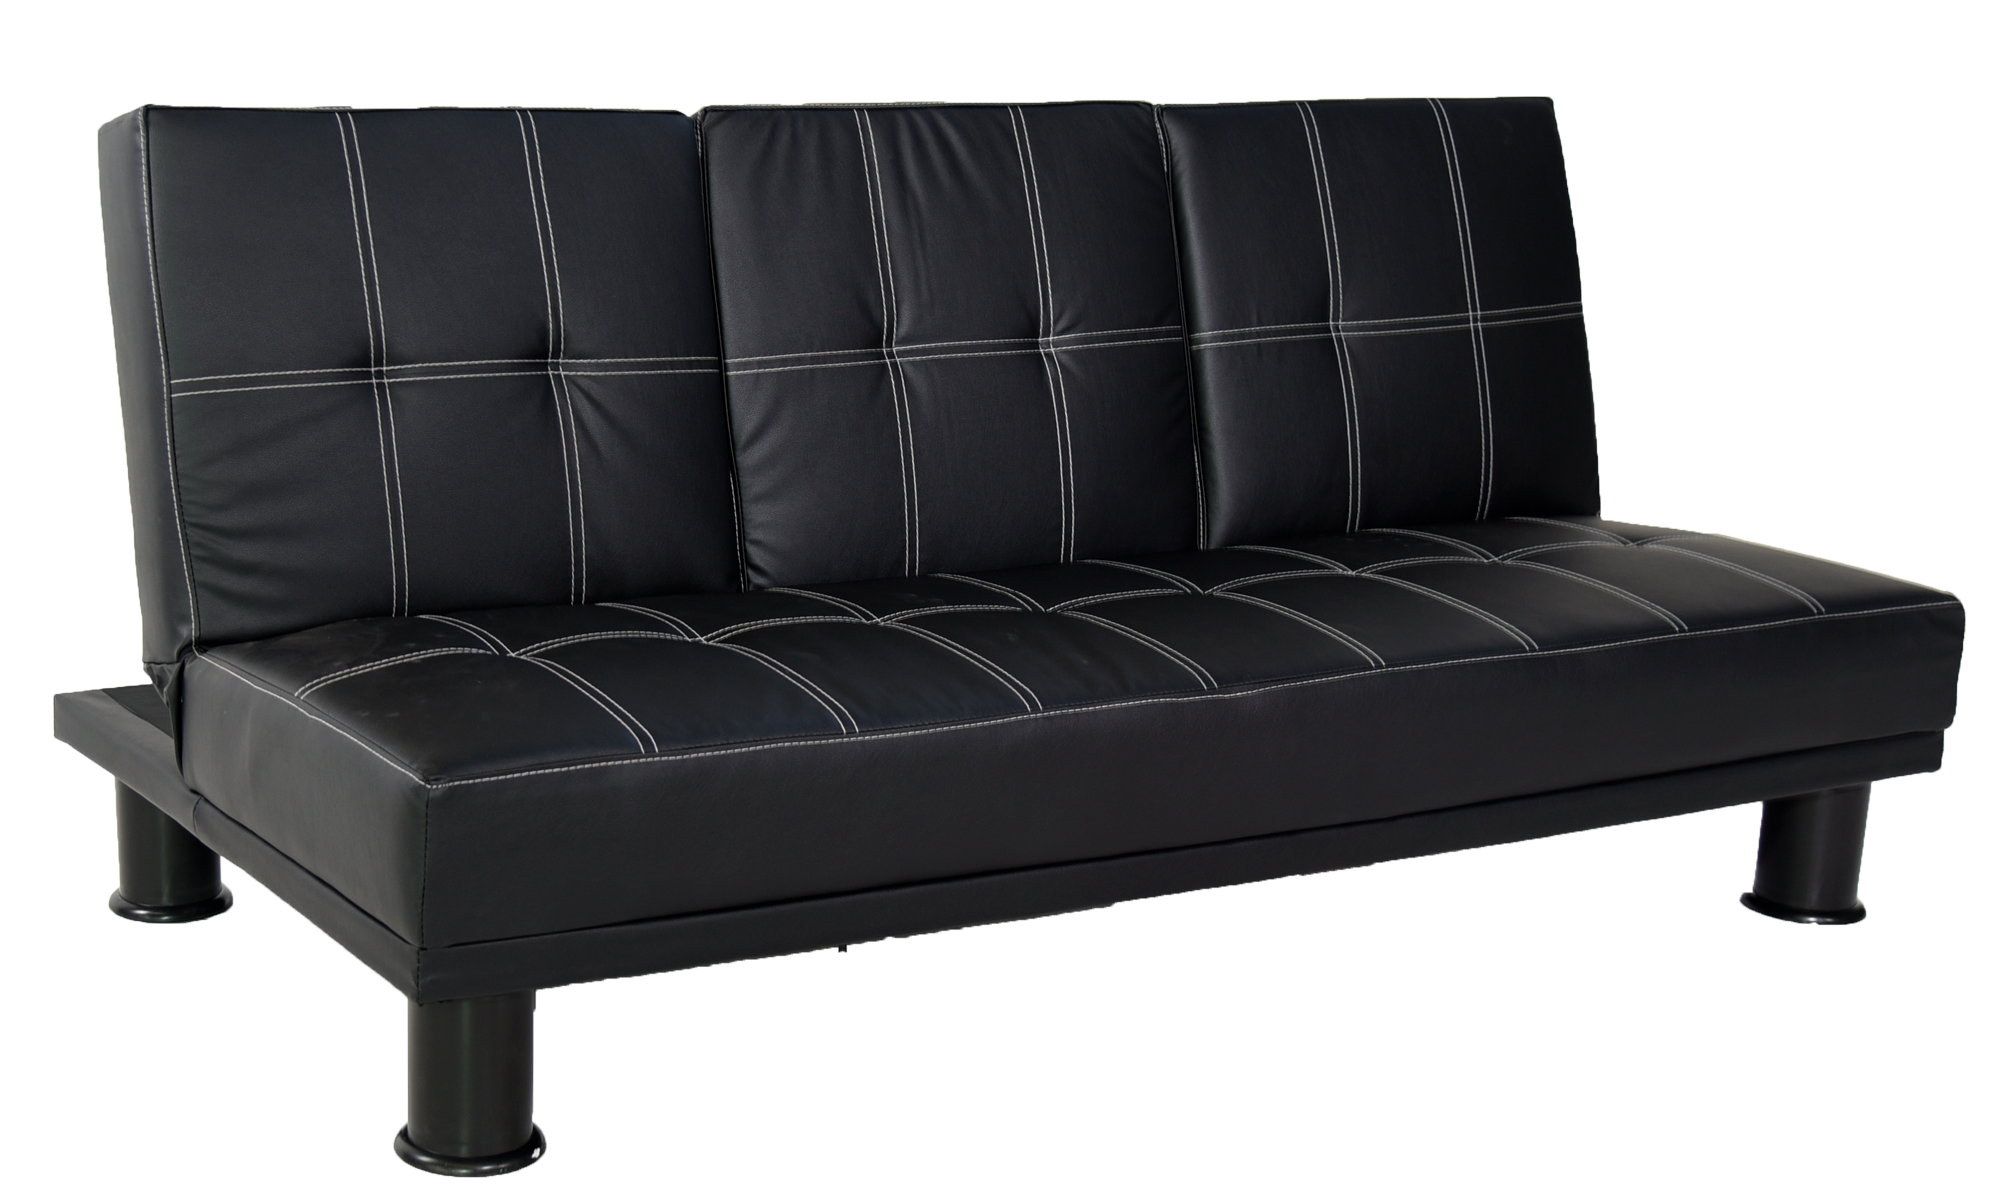 section sofa long pulaski couch with sofas reclining sectionals modular chocolate sectional armless couches furniture at blue recliner suede leather sleeper luxury costco